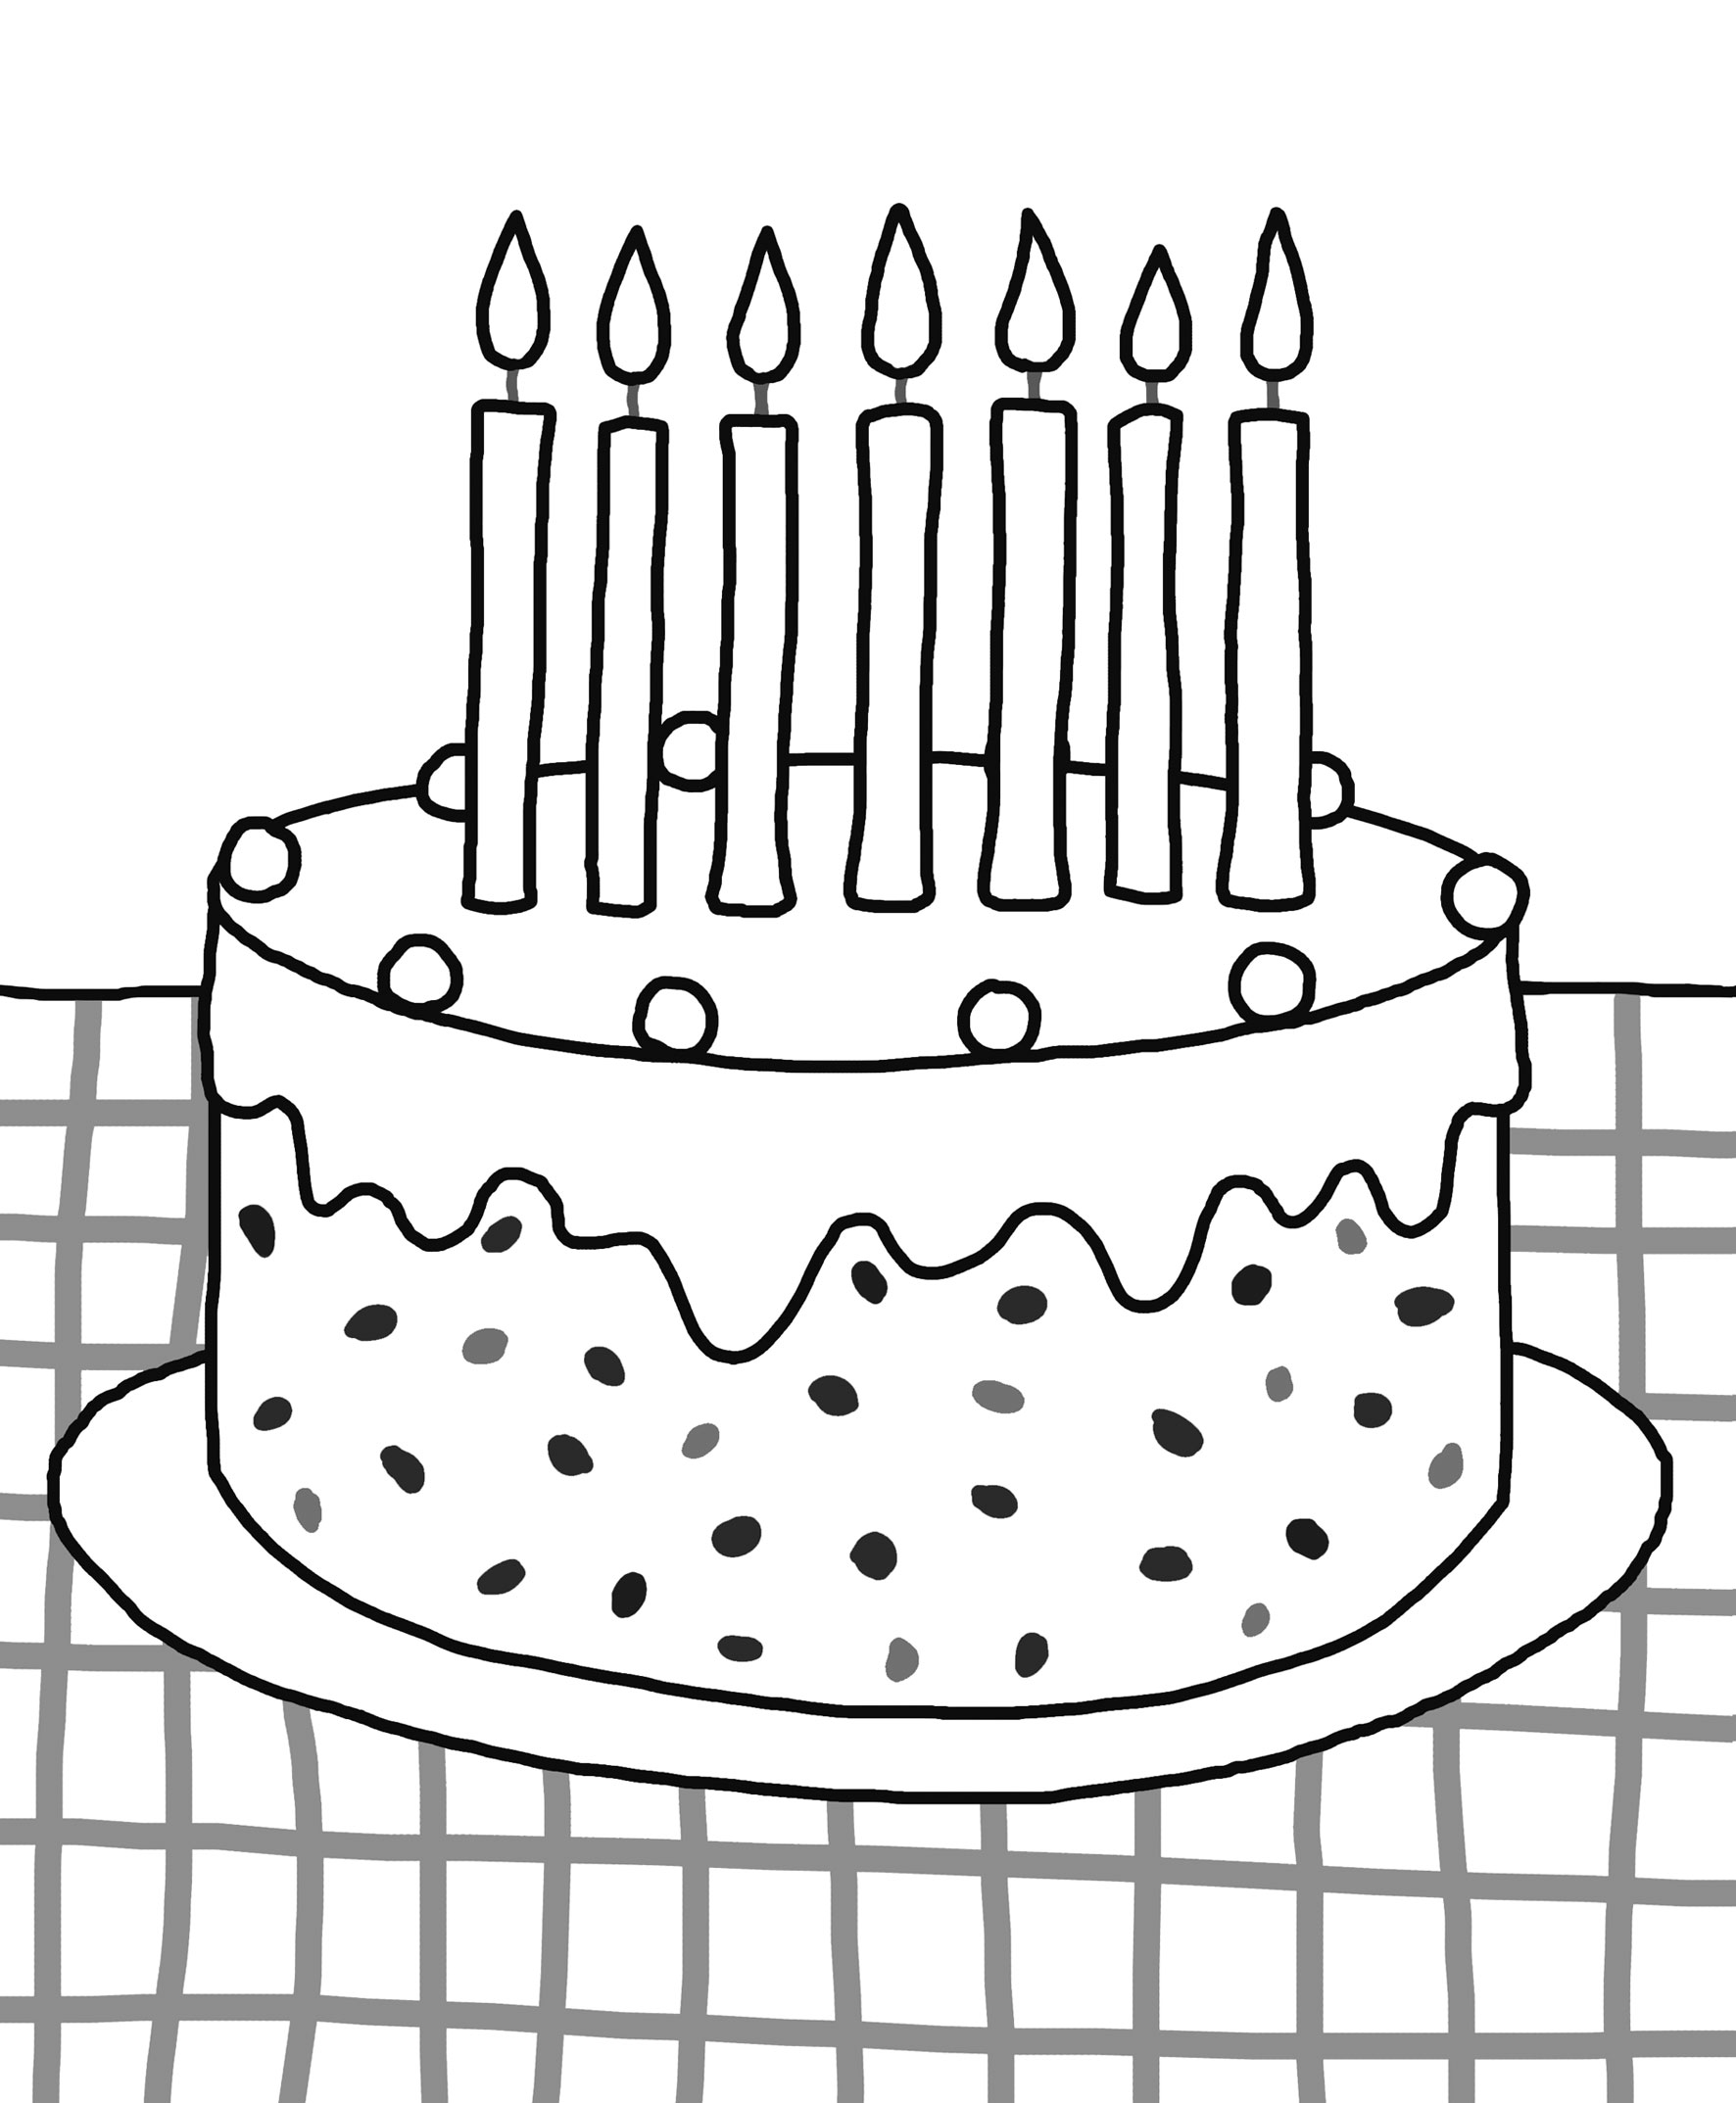 Cake Drawing Template At Getdrawings